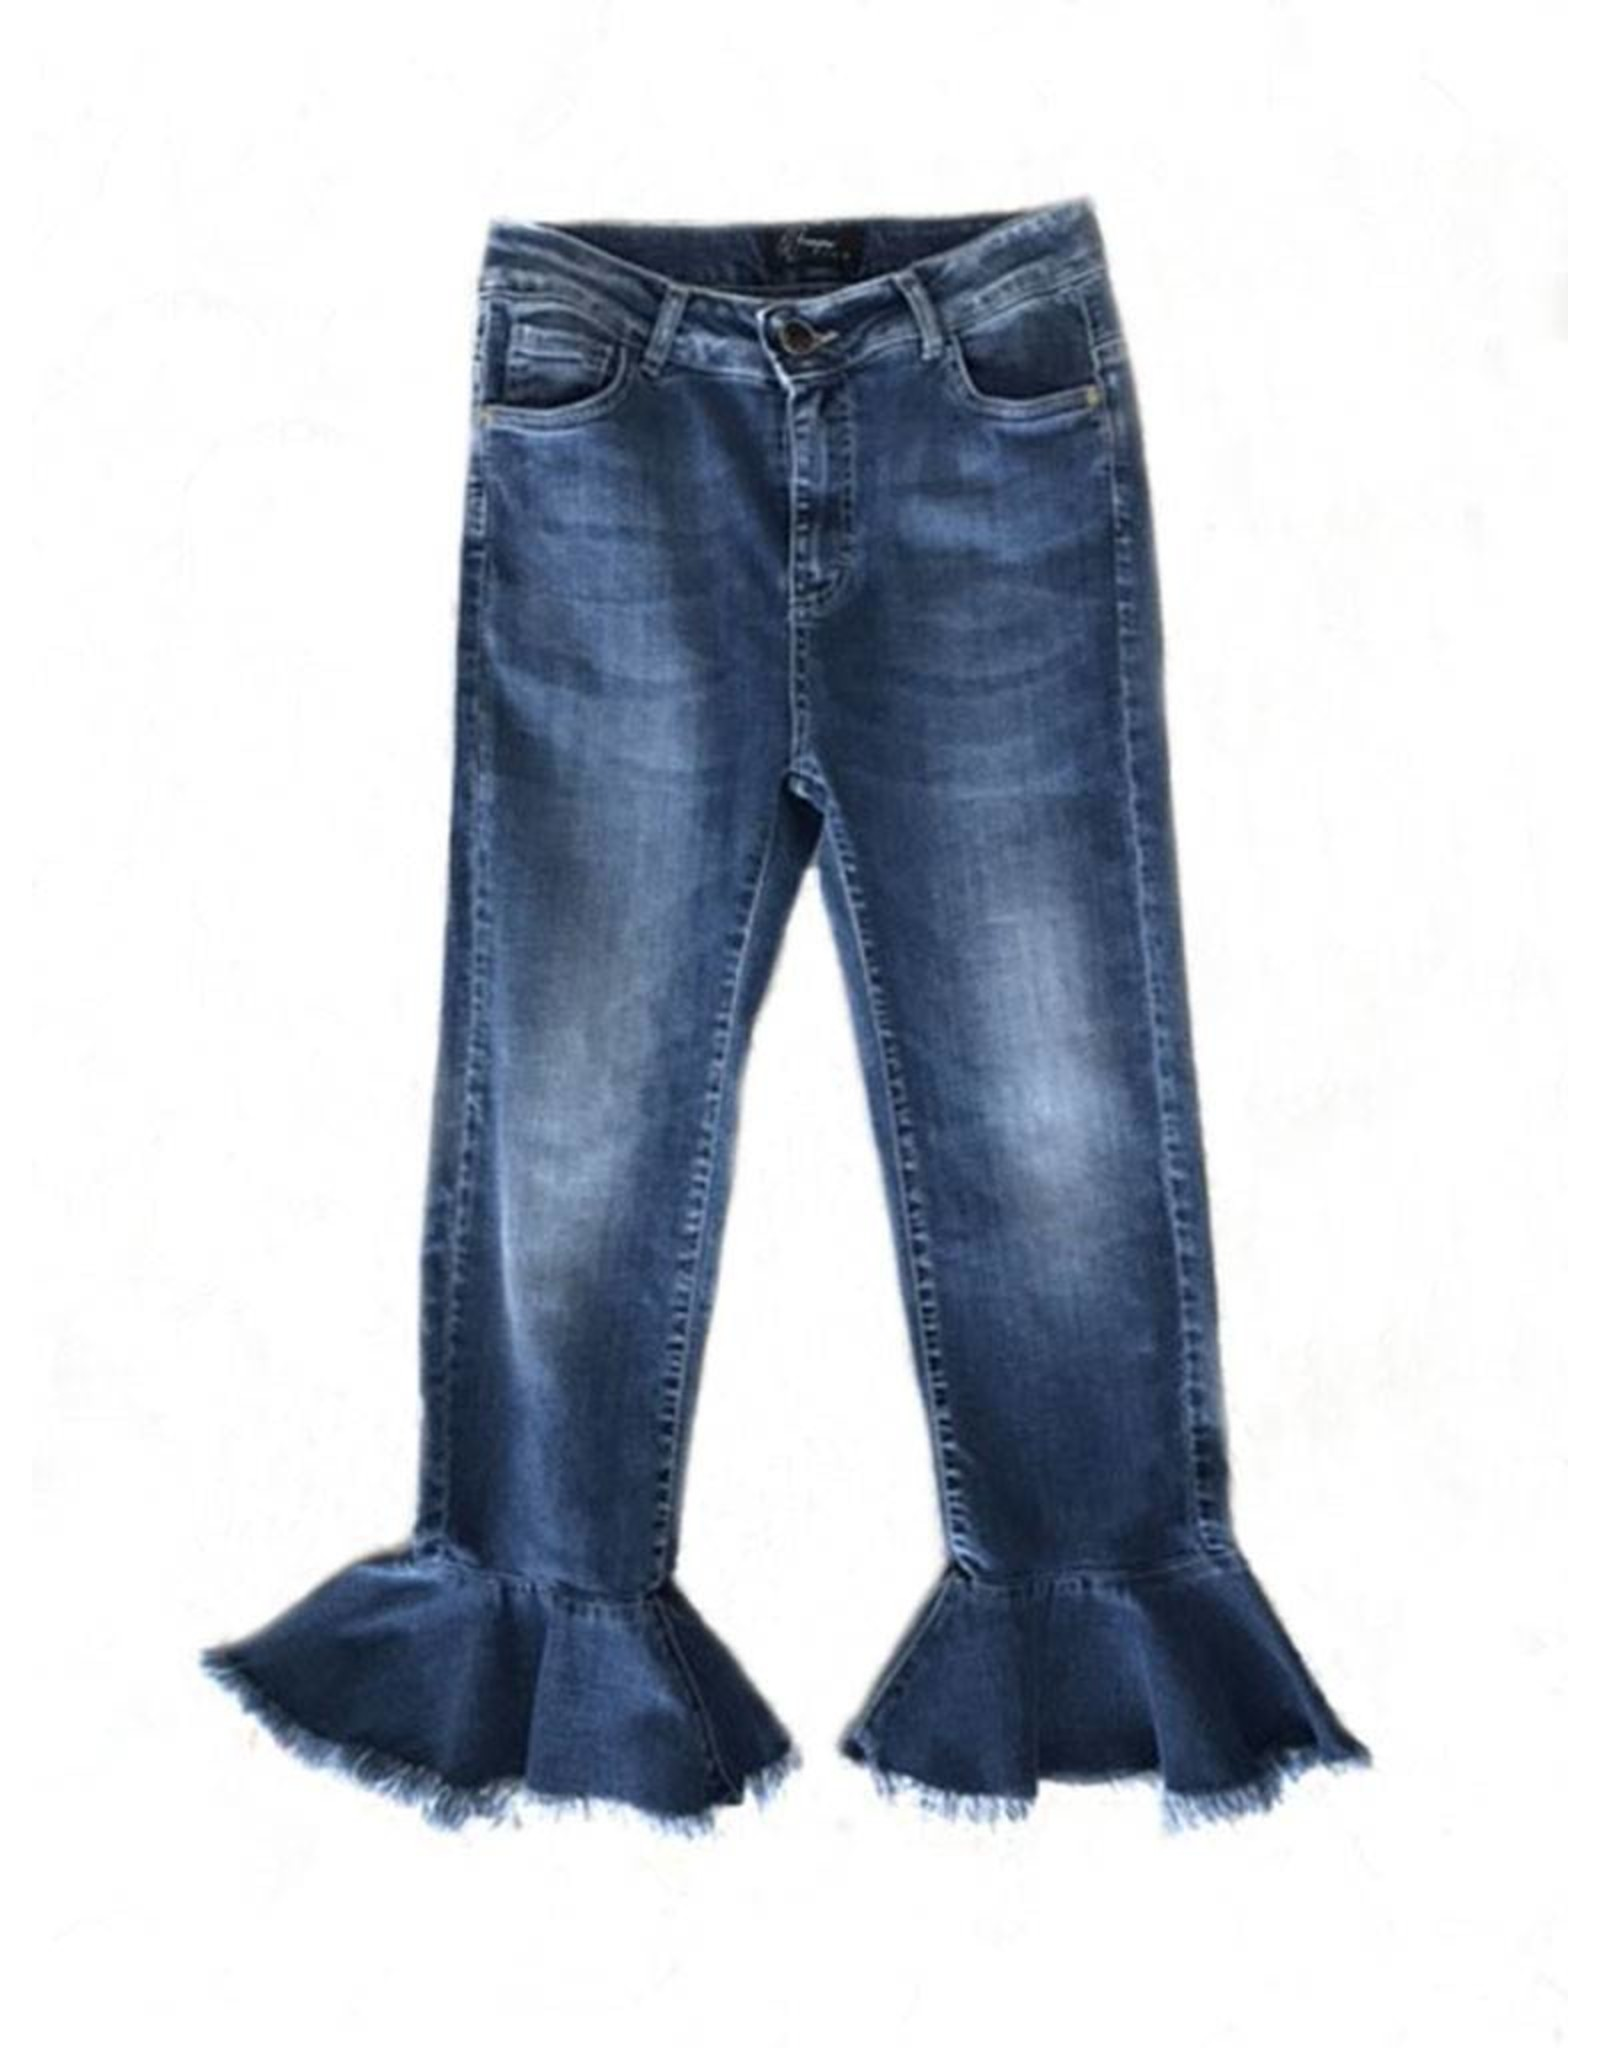 Que Guapa Denim W/ ruffles on the bottom